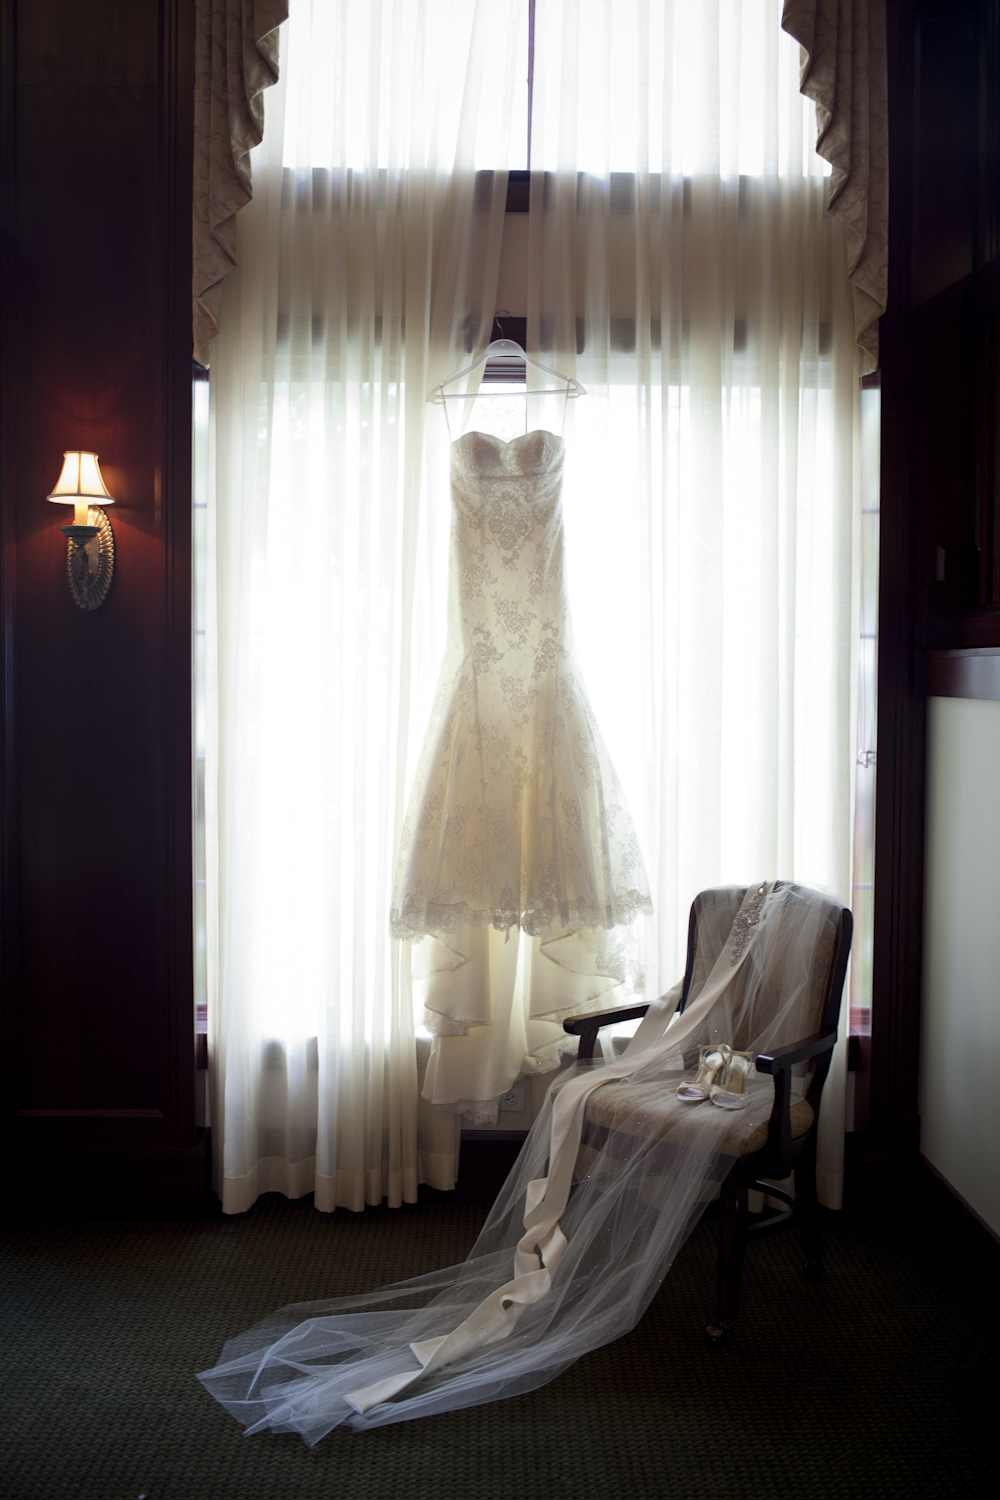 Indianapolis-Indiana-Wedding-Photographer-Crowes-Eye-Photography-Brides-Dress.jpg